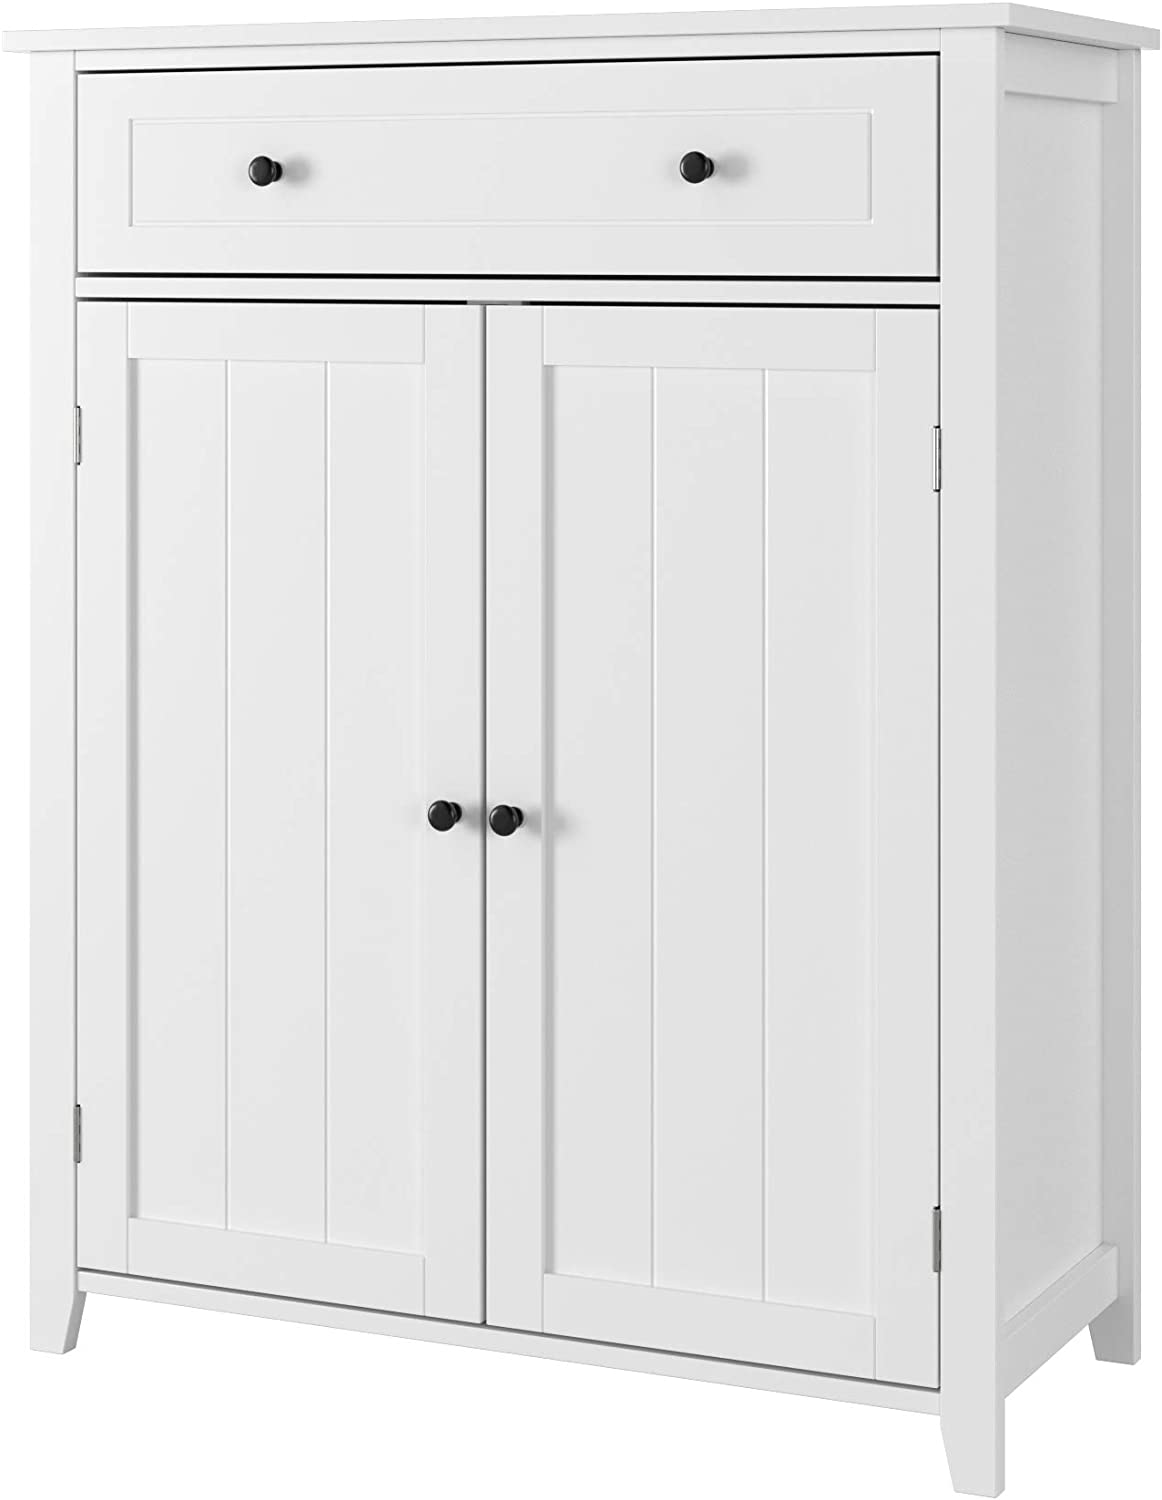 Homfa Bathroom Floor Cabinet, 31.5Lx13.8Wx39.4H inch Free Standing Large Side Cabinet Dresser Wooden Storage Organizer with 1 Large Drawer and 2 Door for Bedroom Home Office, White